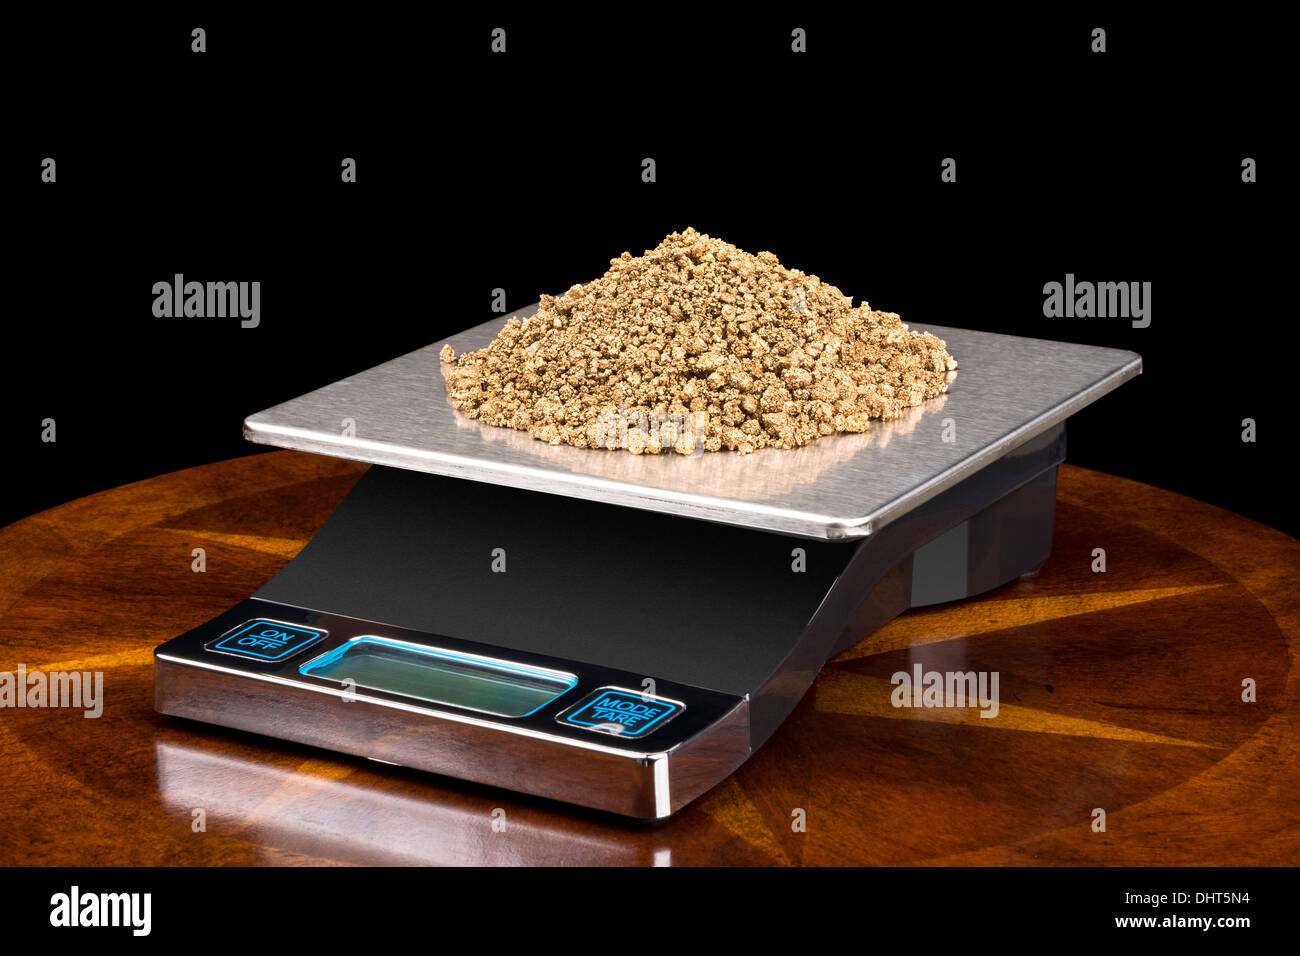 A pile of small gold nuggets on a scale being weighed for their investment value. - Stock Image